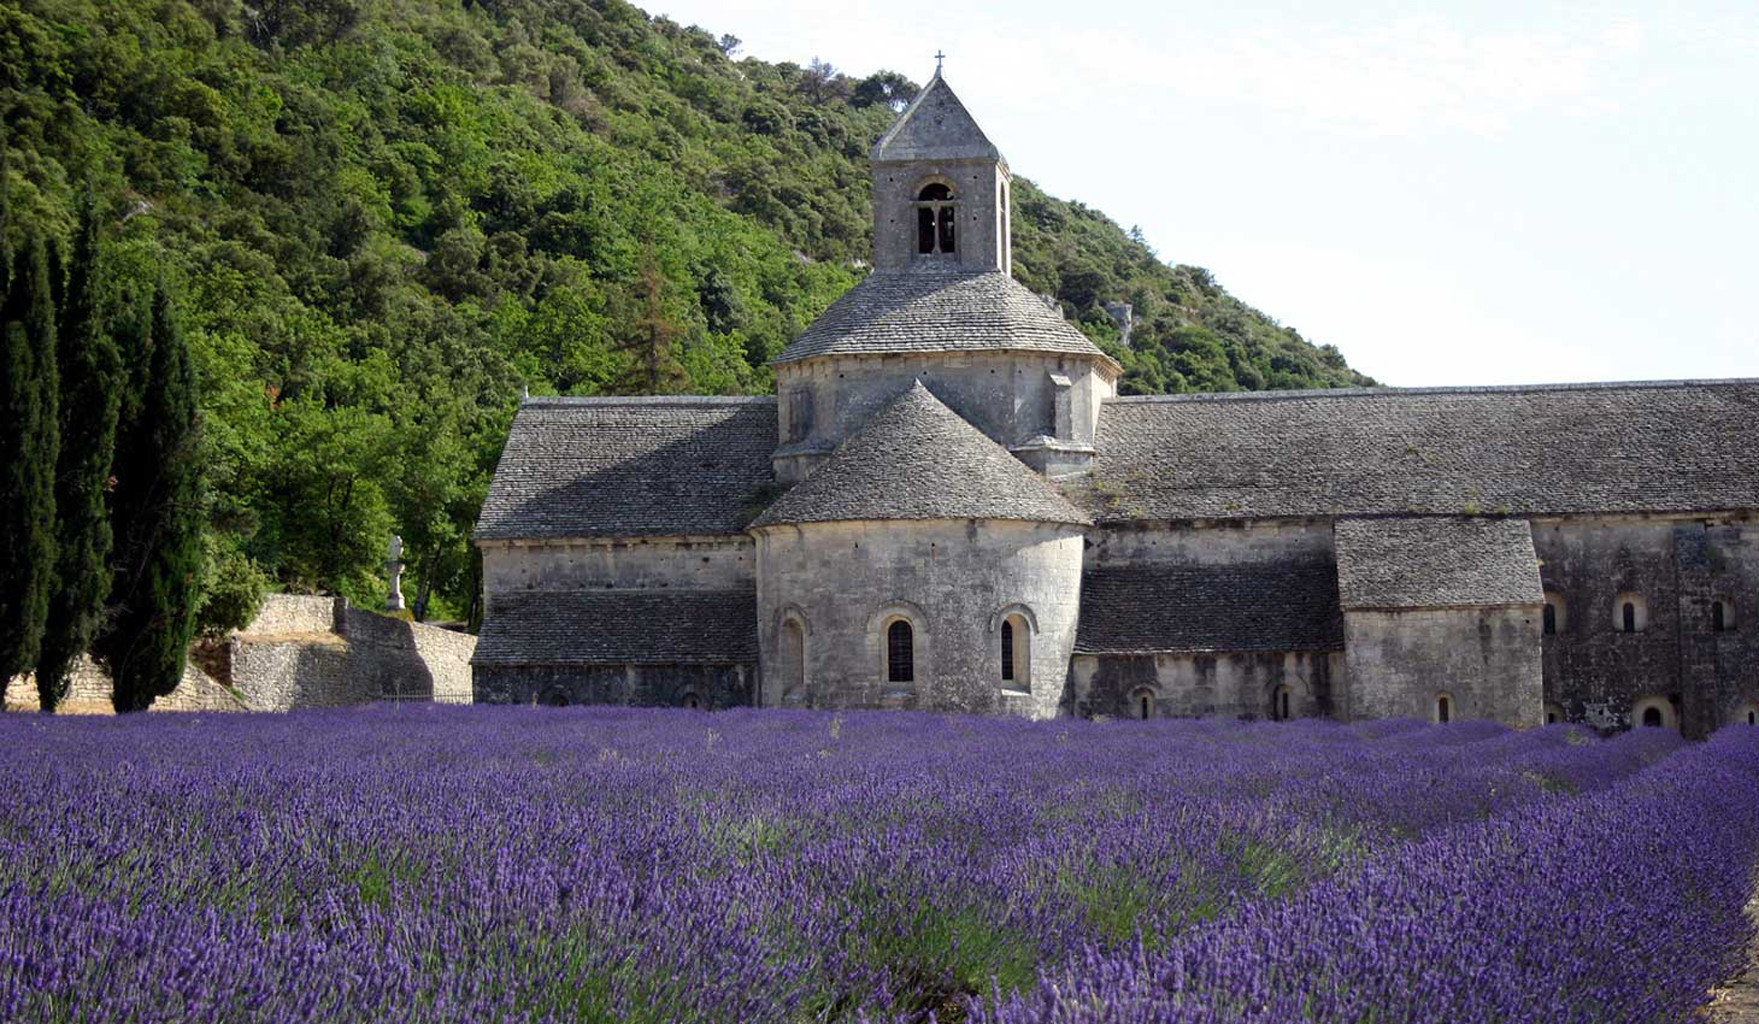 grass building stone flower plant rural area castle monastery chapel old